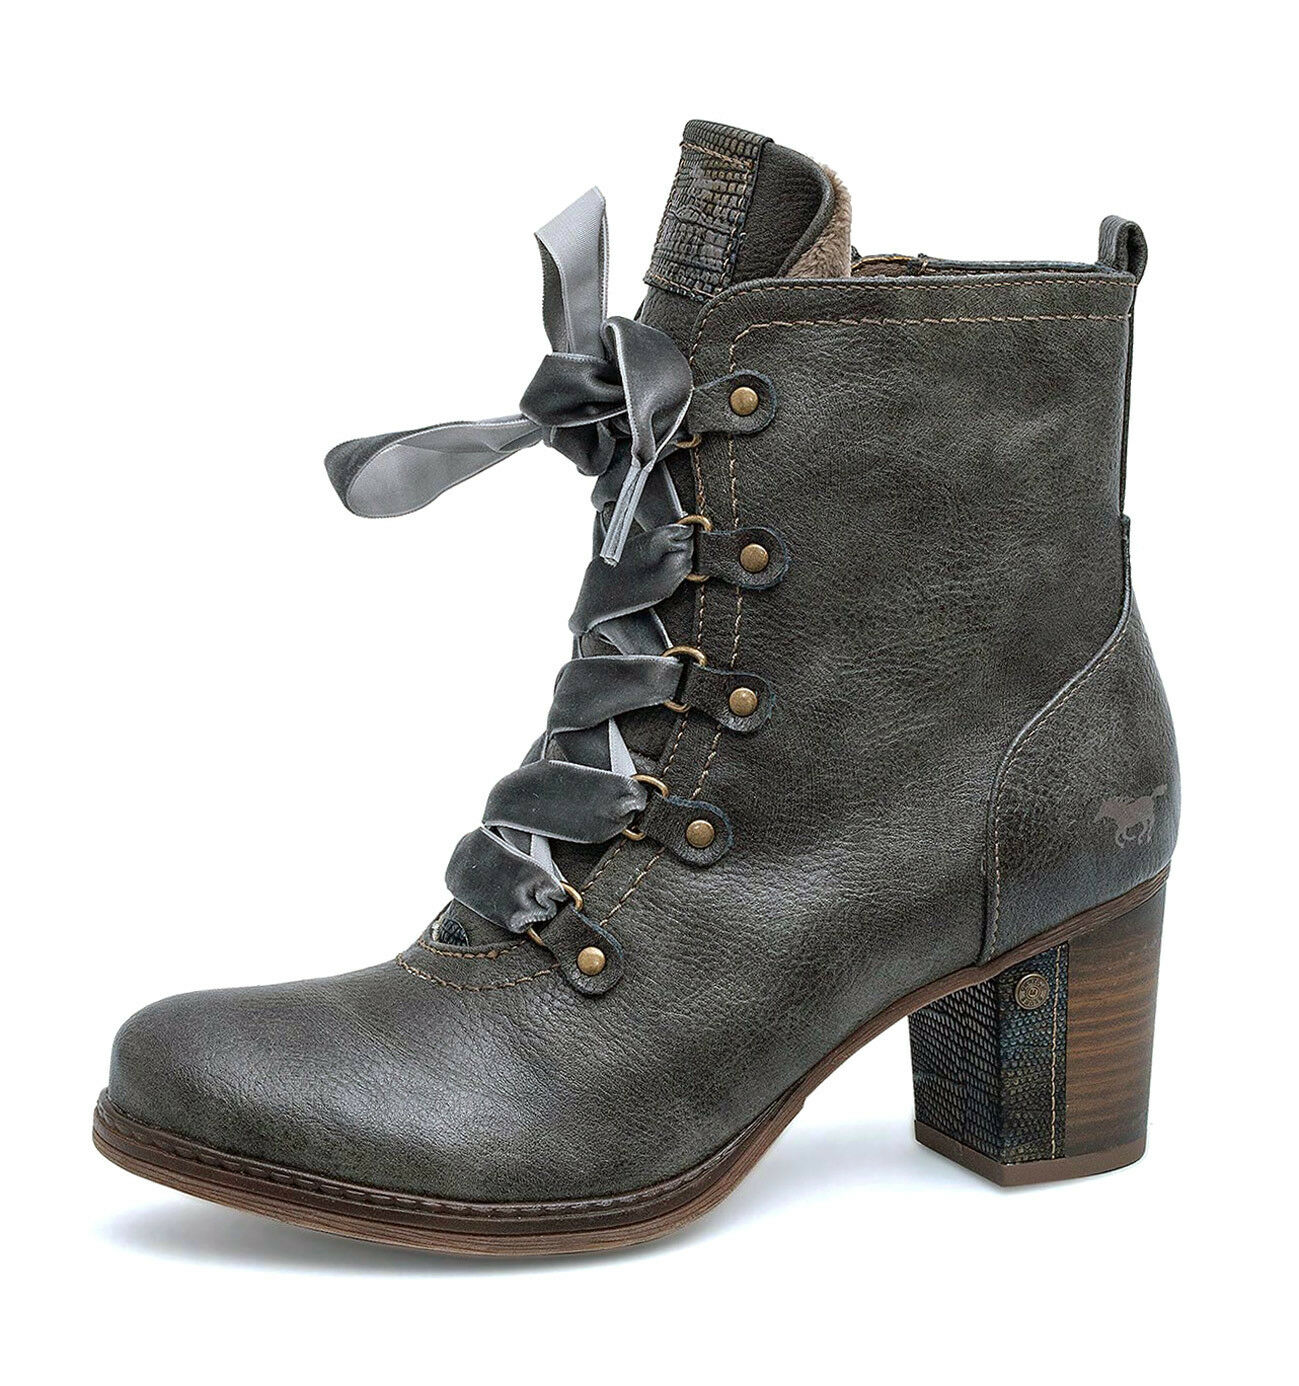 Mustang NEW 1286-503 dark grau lace up high heel fashion ankle Stiefel Größes 4-8